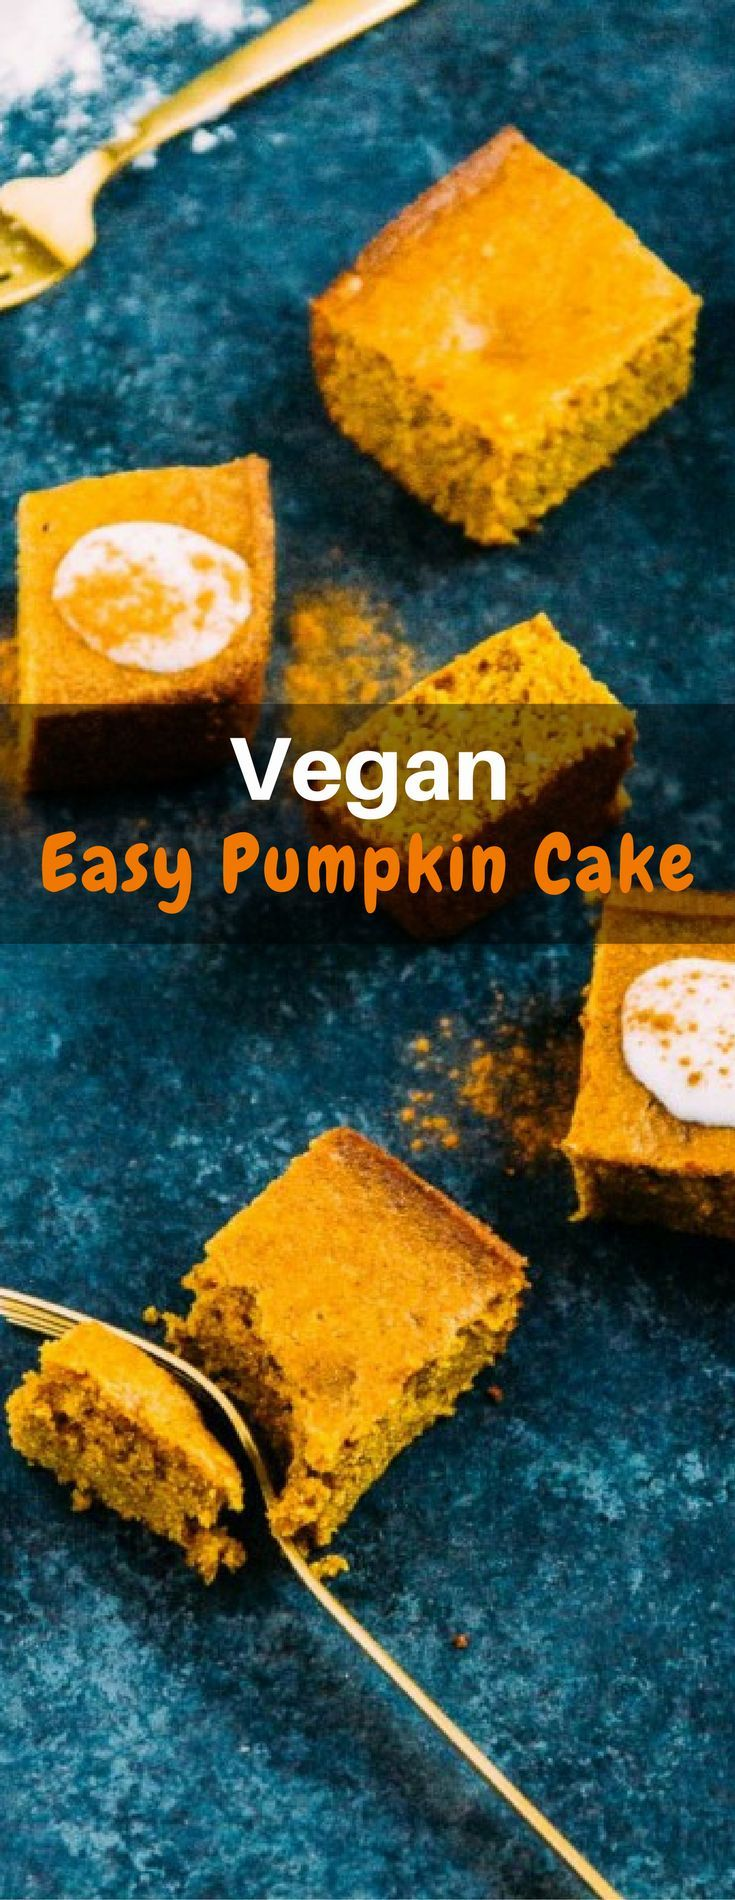 I've been looking for a super easy, go-to pumpkin dessert that doesn't take much time (30 minutes for this cake, check!) and doesn't require ingredients that I don't always have around (check!). The best part about this easy pumpkin cake is that it's obviously vegan, doesn't require more than one bowl, and can be thrown together from start to finish to cooling in under an hour. Pumpkin dessert perfection!